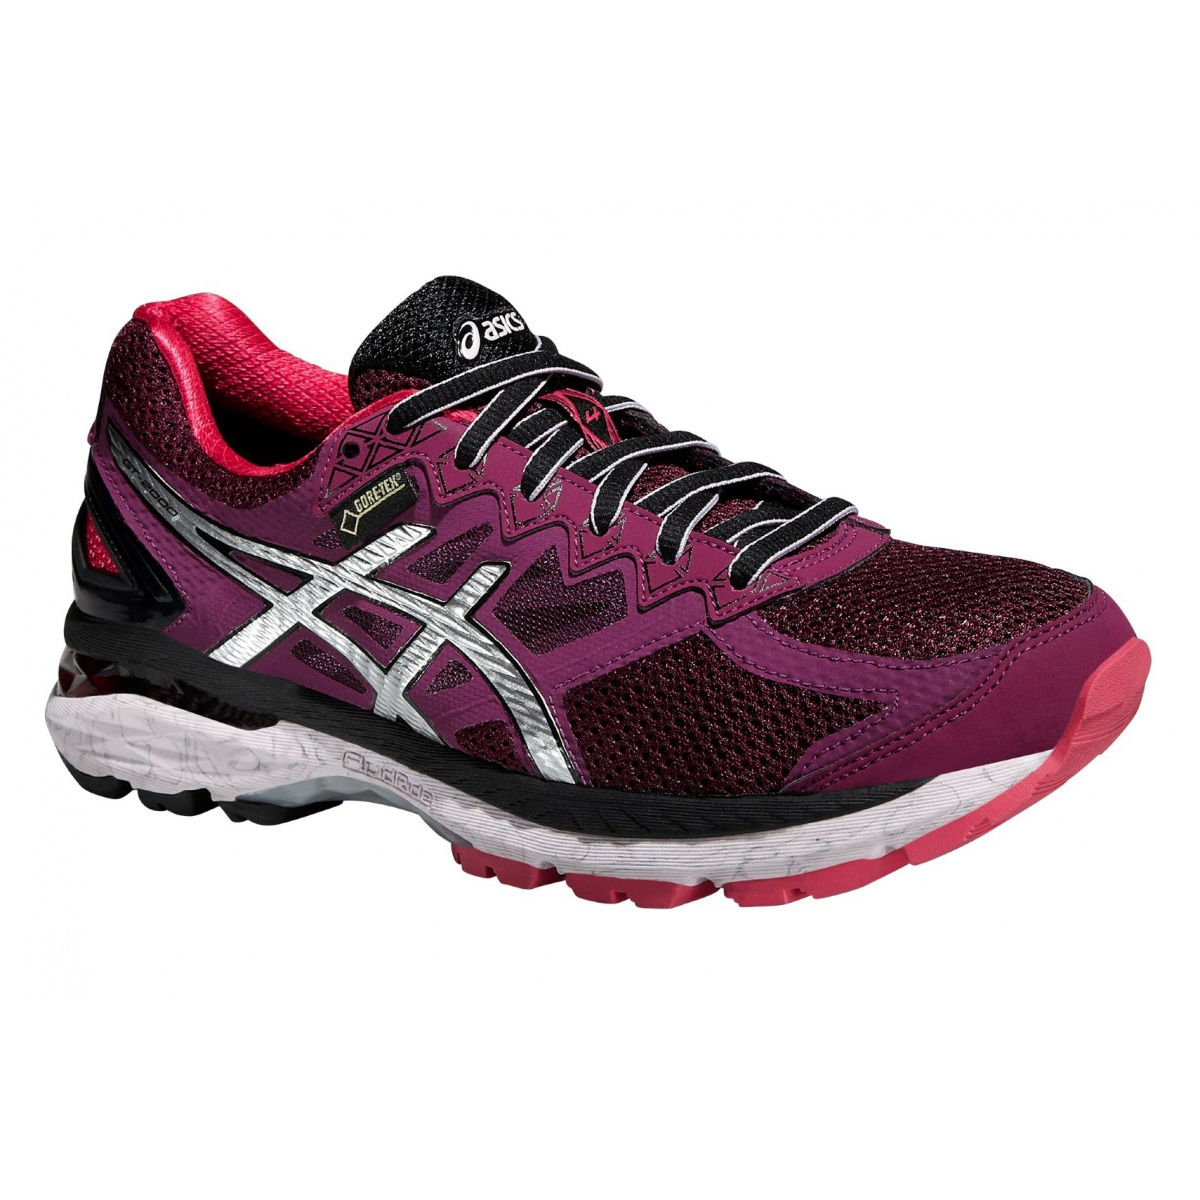 asics gt 2000 4 gtx 2016 plum laufschuhe damen online bestellen. Black Bedroom Furniture Sets. Home Design Ideas